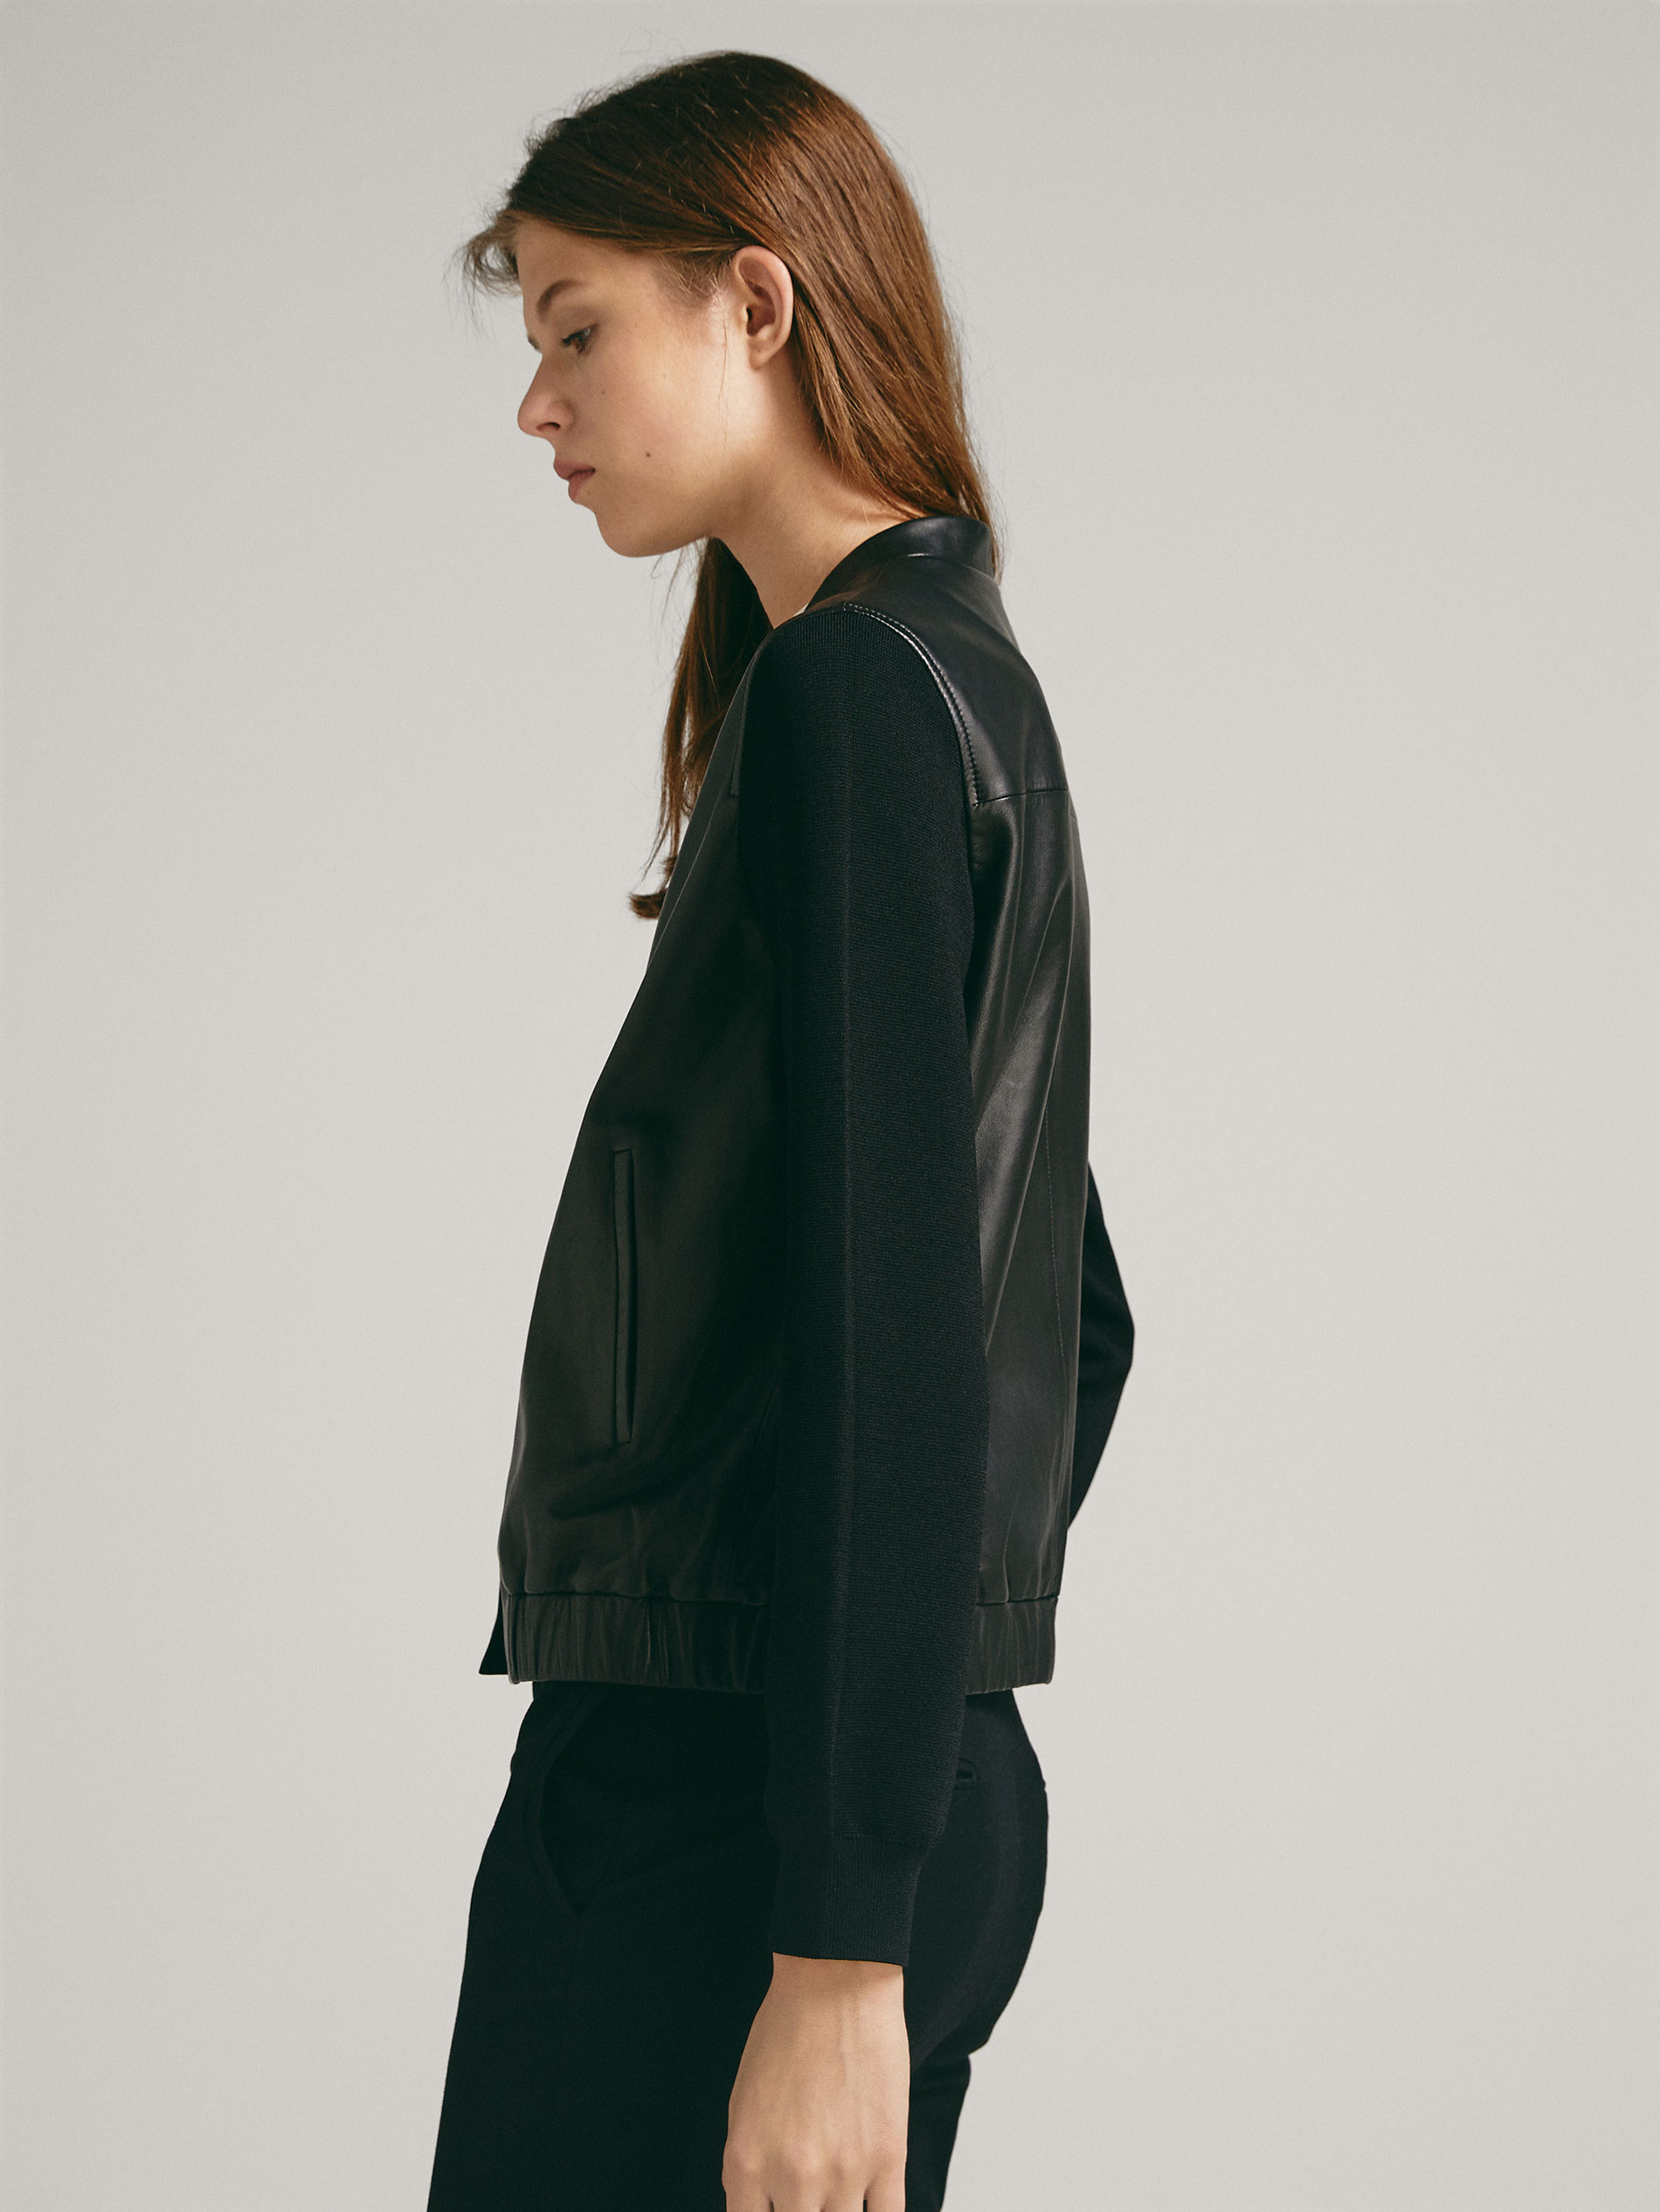 db4912f5e03 Massimo Dutti CONTRASTING NAPPA LEATHER AND KNIT BOMBER JACKET at ...